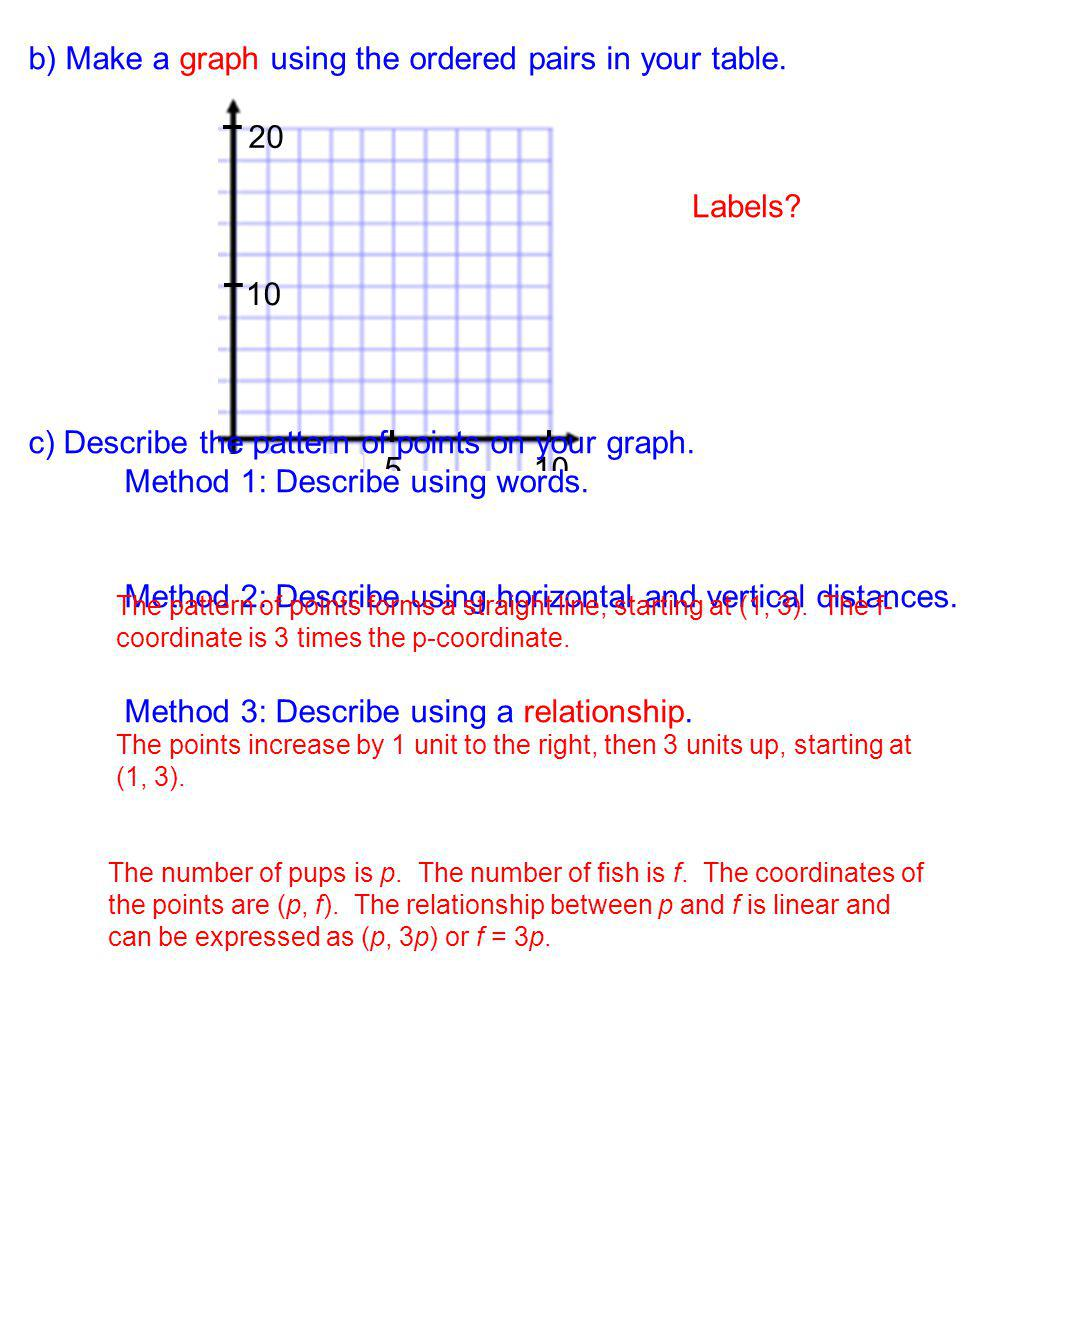 b) Make a graph using the ordered pairs in your table.